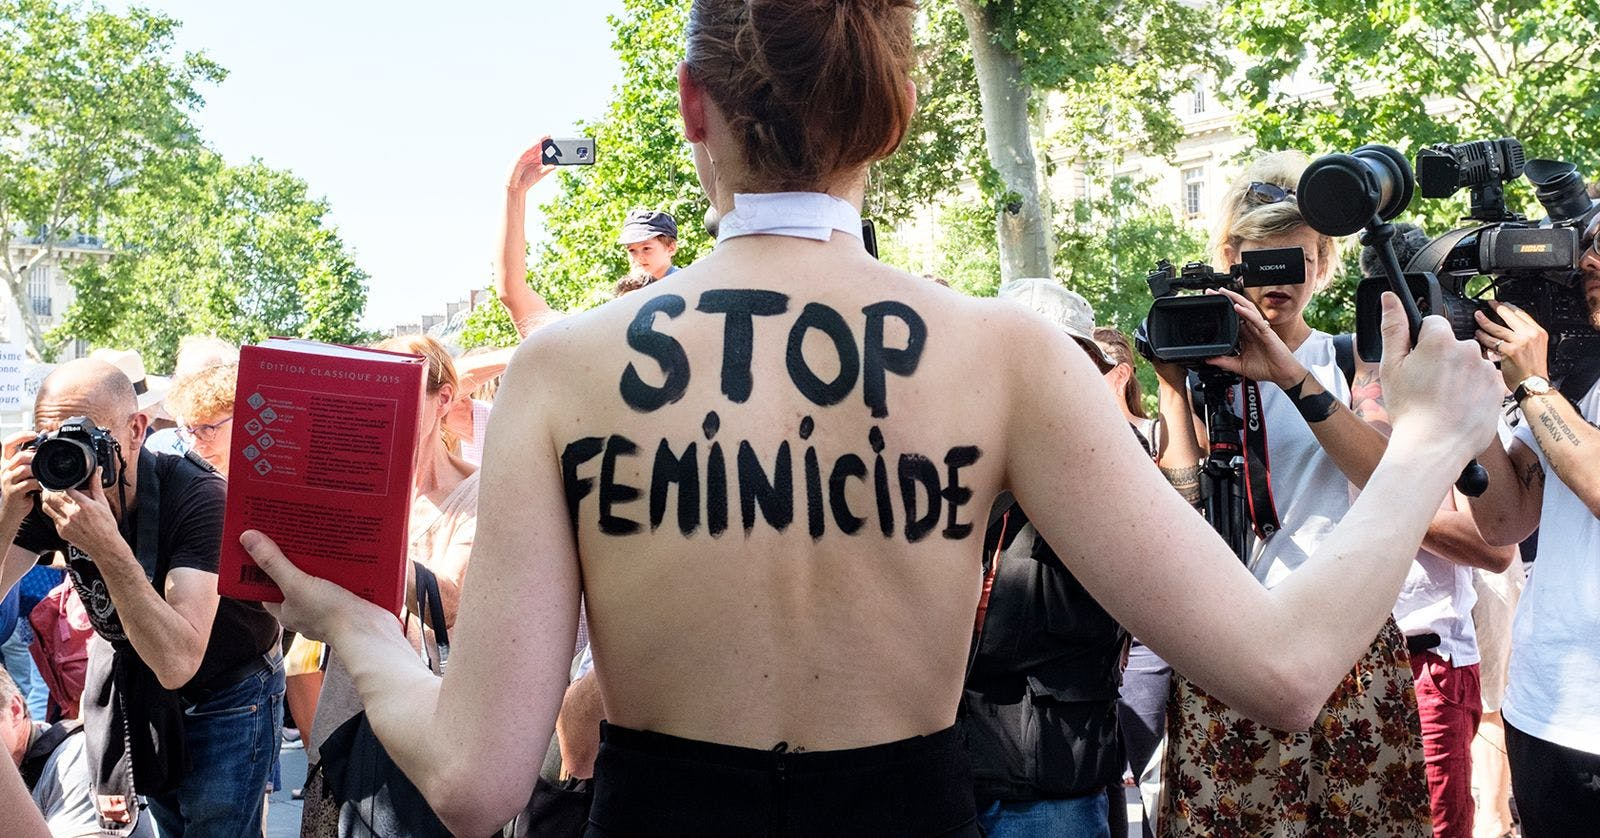 French activists are protesting to end femicide for good